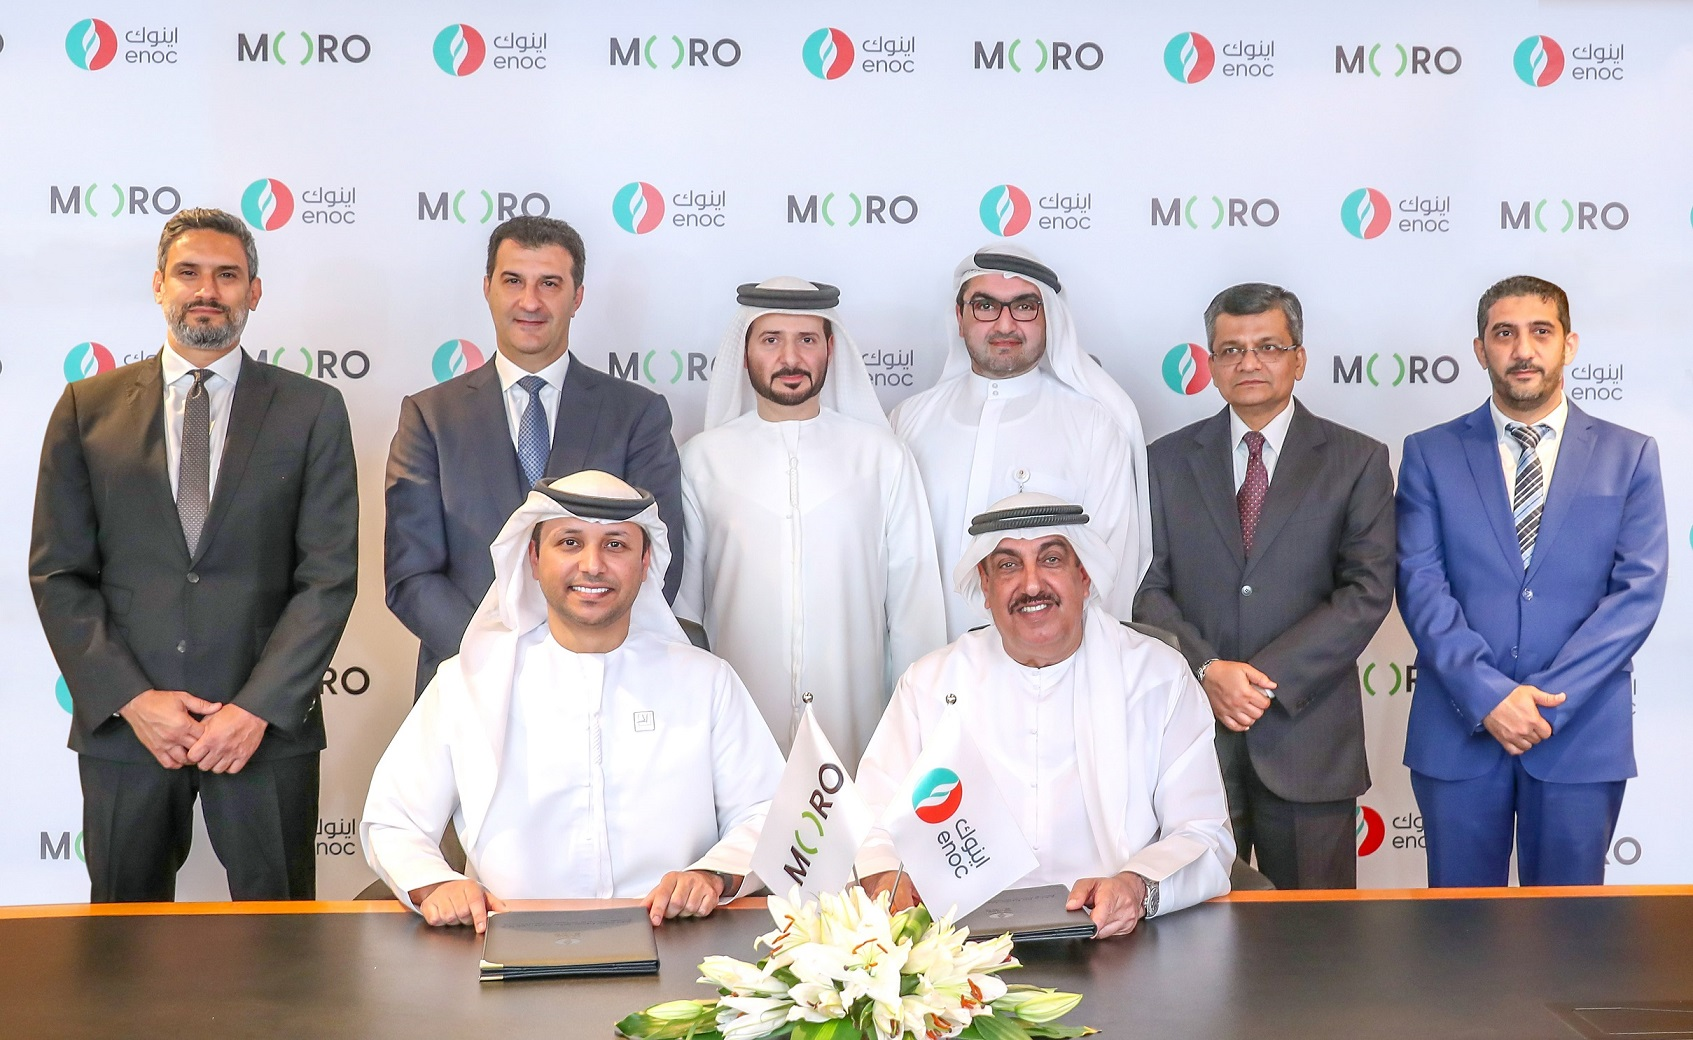 ENOC partners with Moro to drive the group's digital transformation